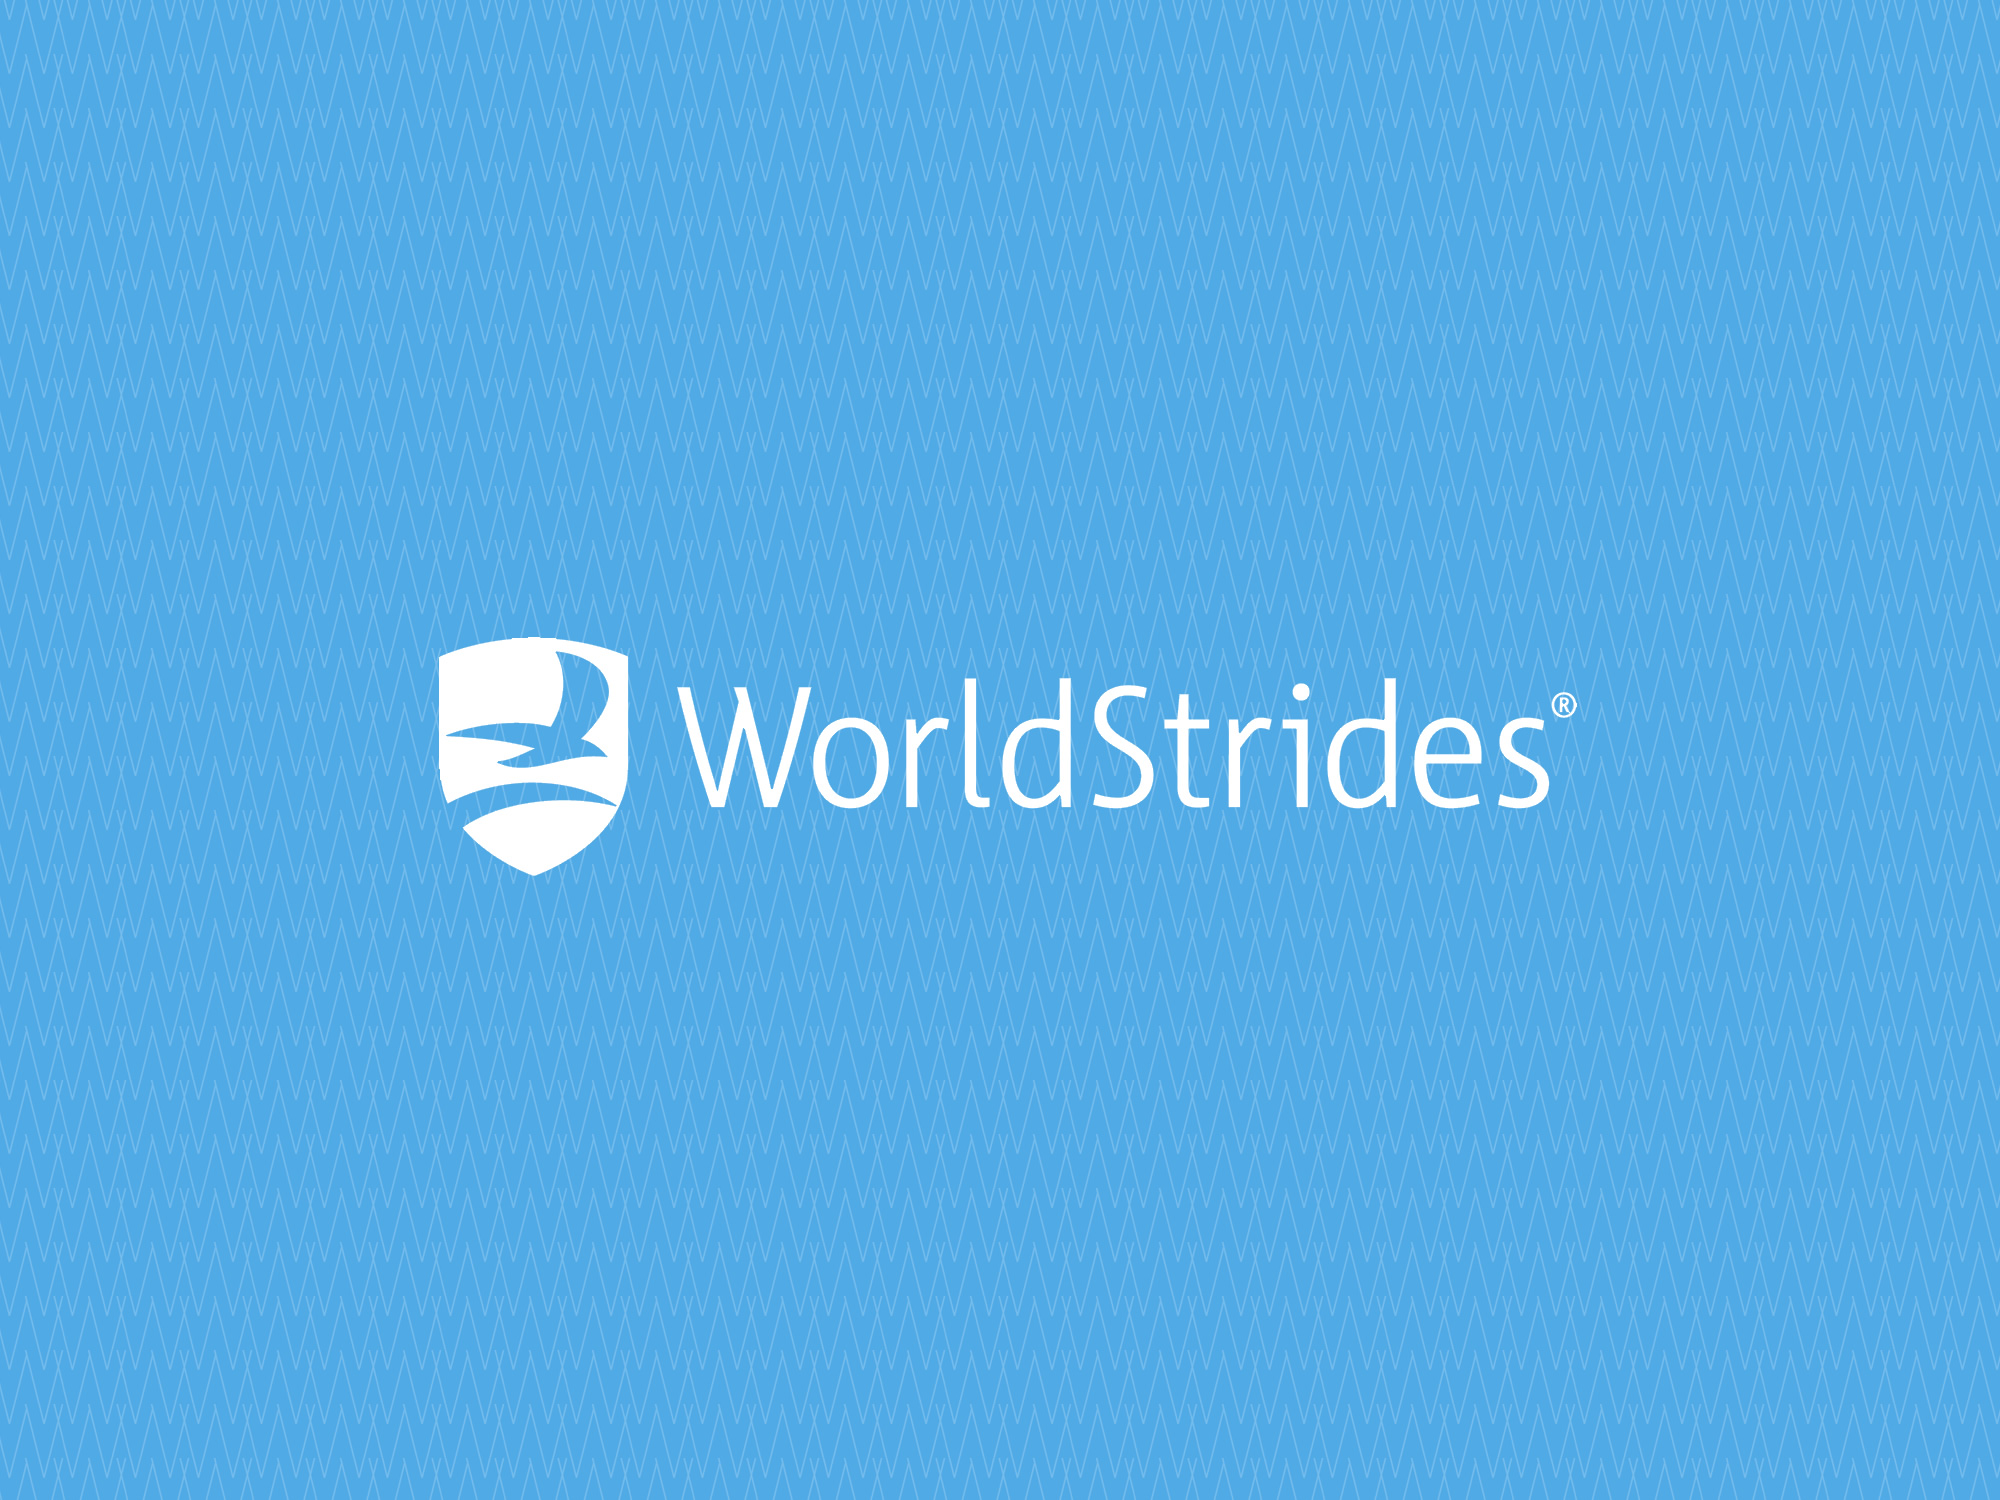 Worldstrides Goes Digital with Student Travel Guidebooks